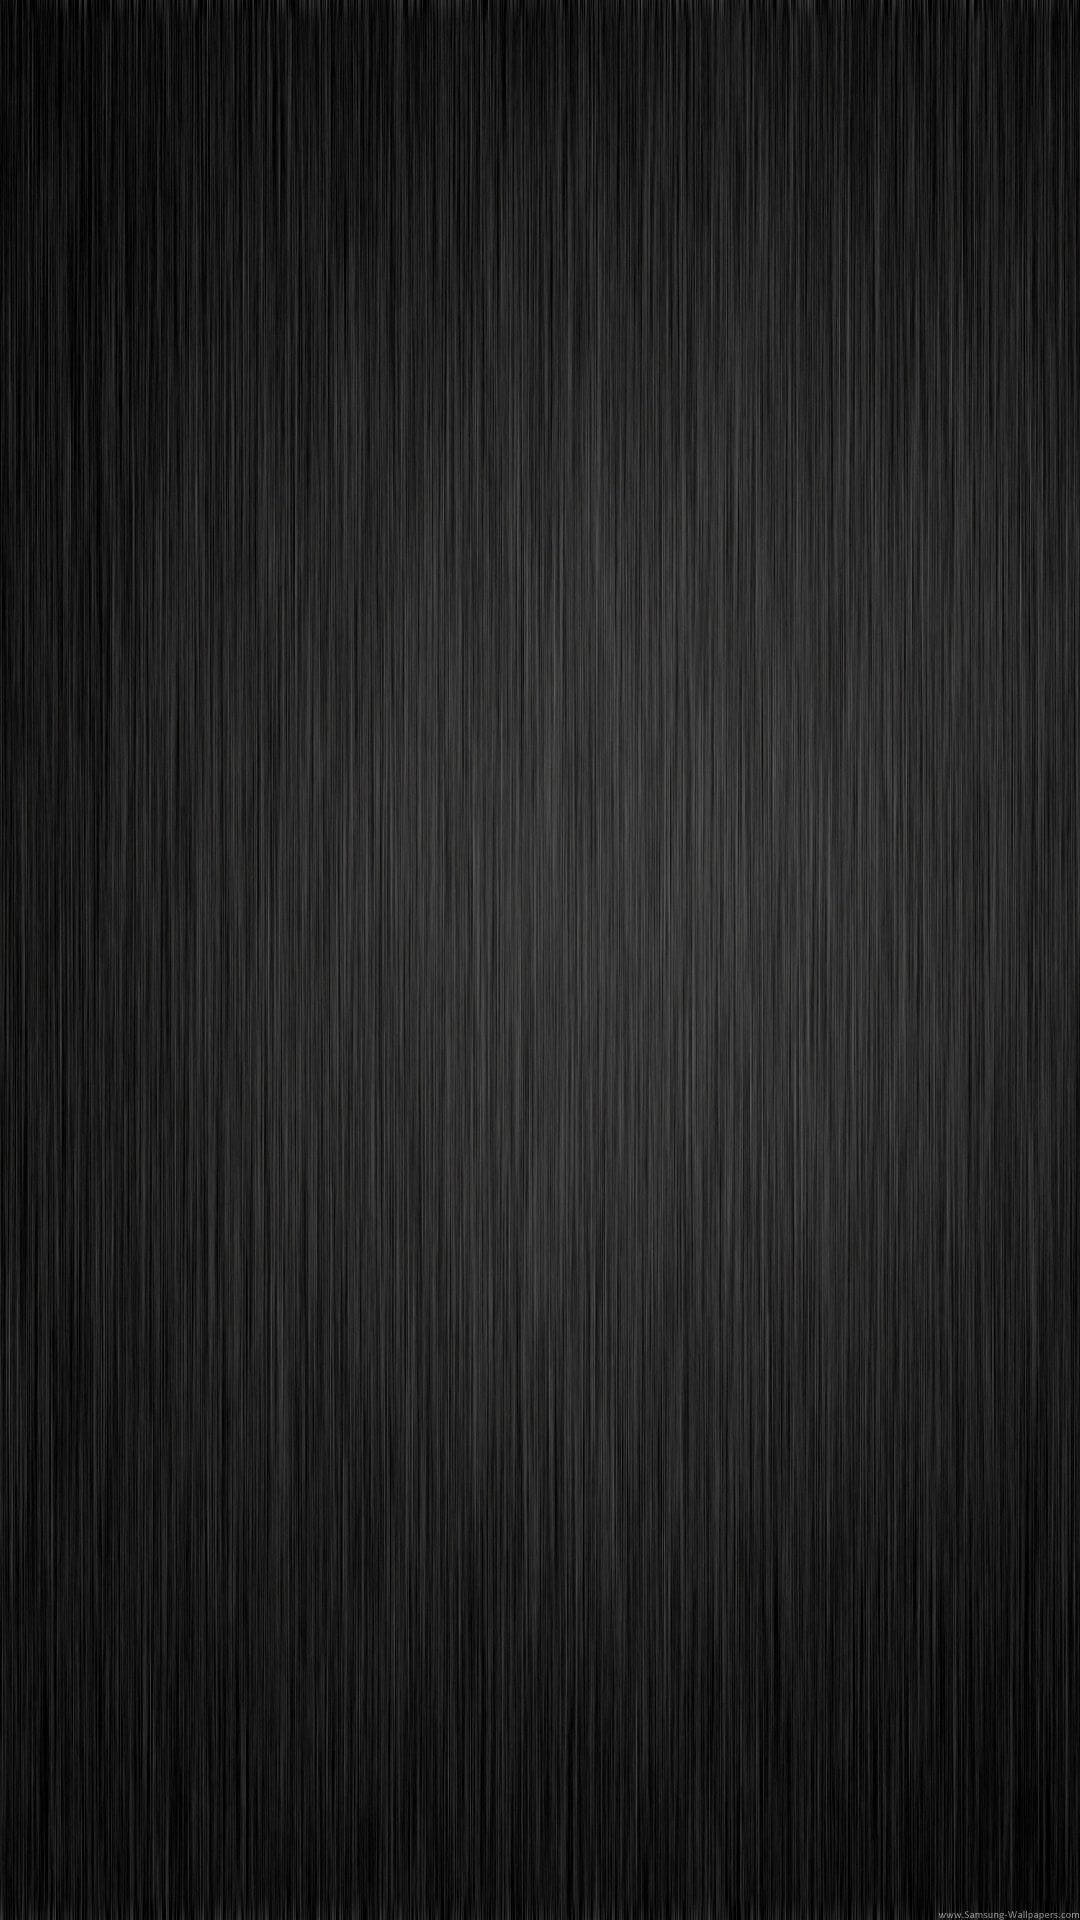 Black Android Wallpapers Top Free Black Android Backgrounds Wallpaperaccess